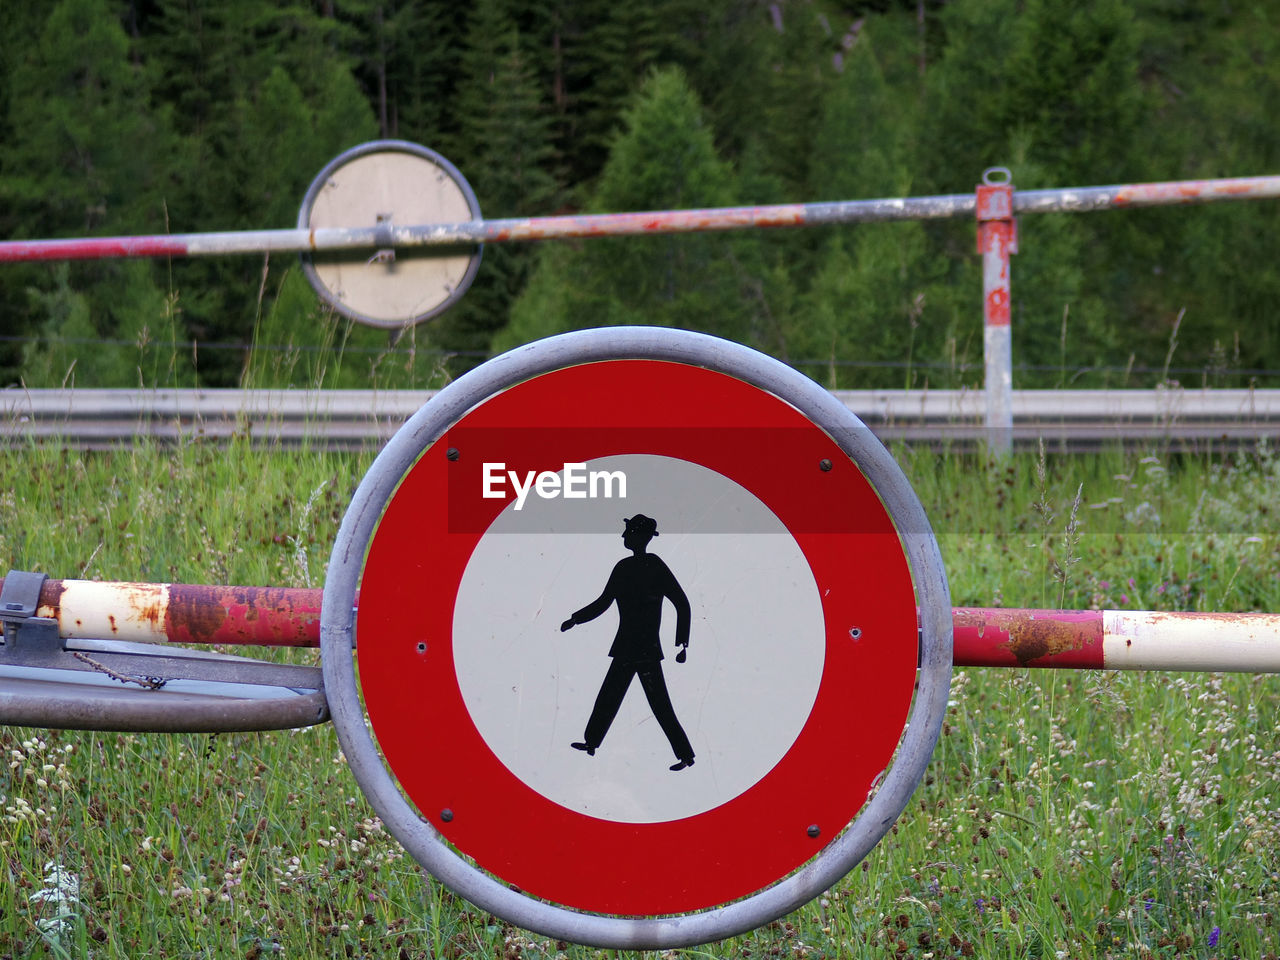 sign, communication, shape, human representation, geometric shape, circle, representation, warning sign, day, red, plant, nature, safety, metal, close-up, male likeness, no people, grass, road sign, field, outdoors